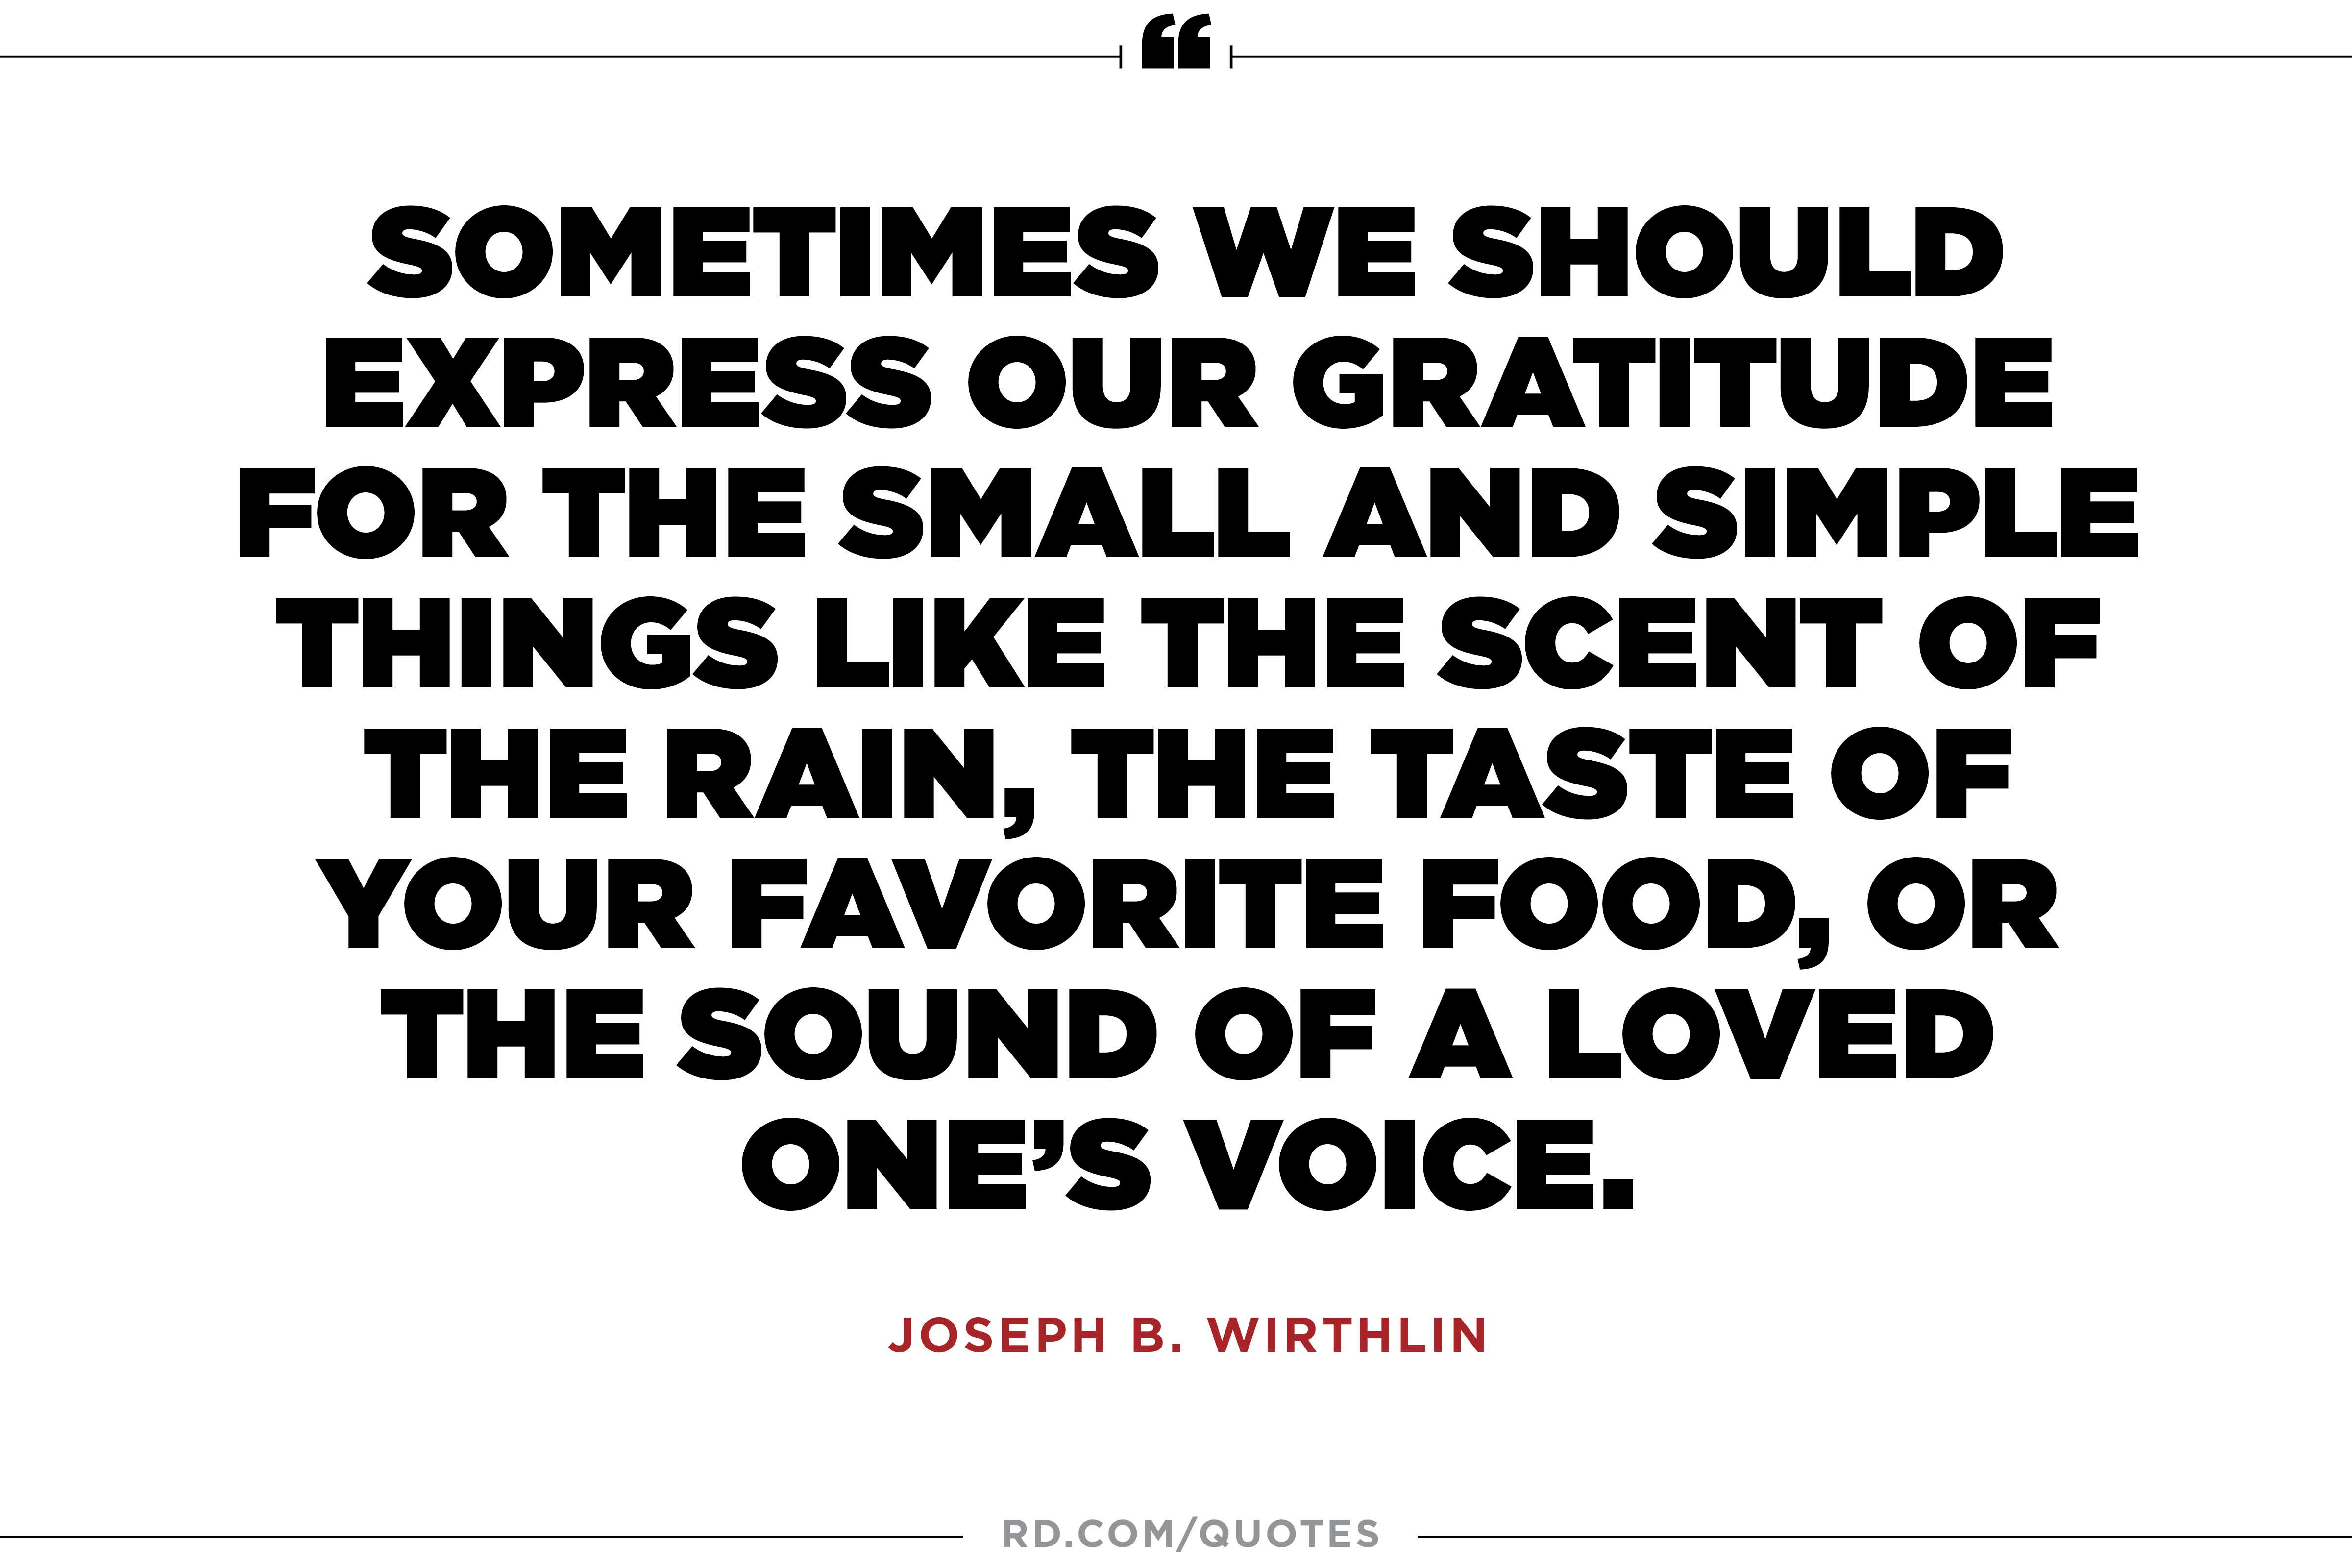 Warm and Fuzzy Quotes to Inspire Gratitude6